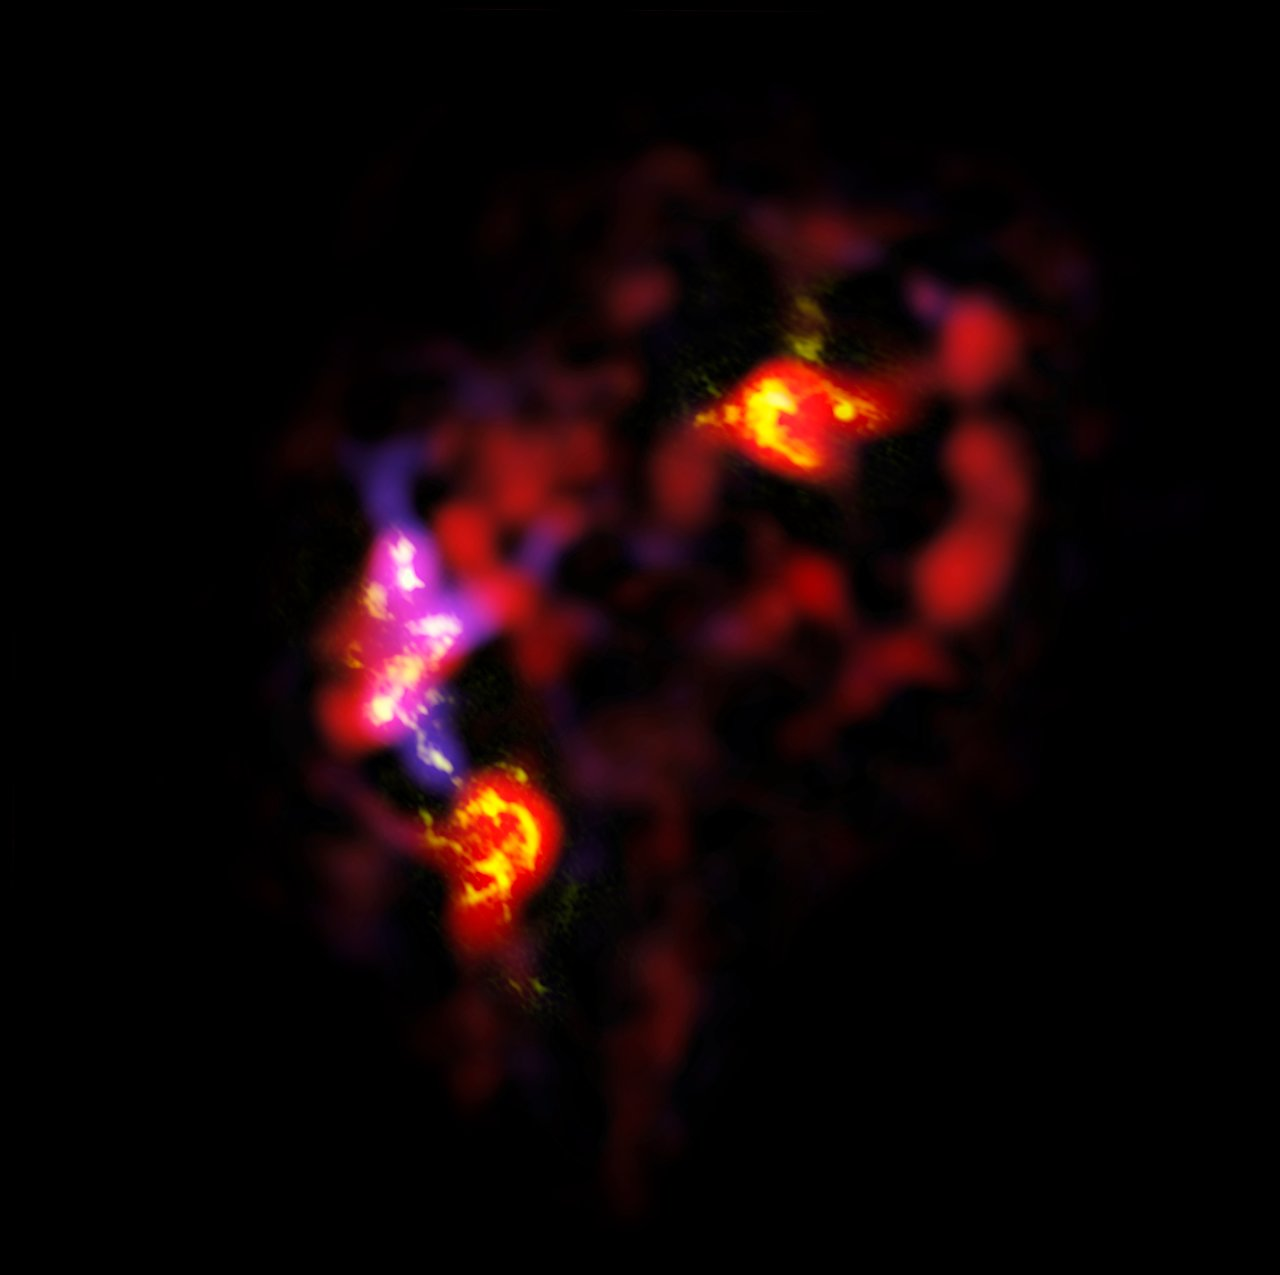 ALMA view of the Antennae Galaxies